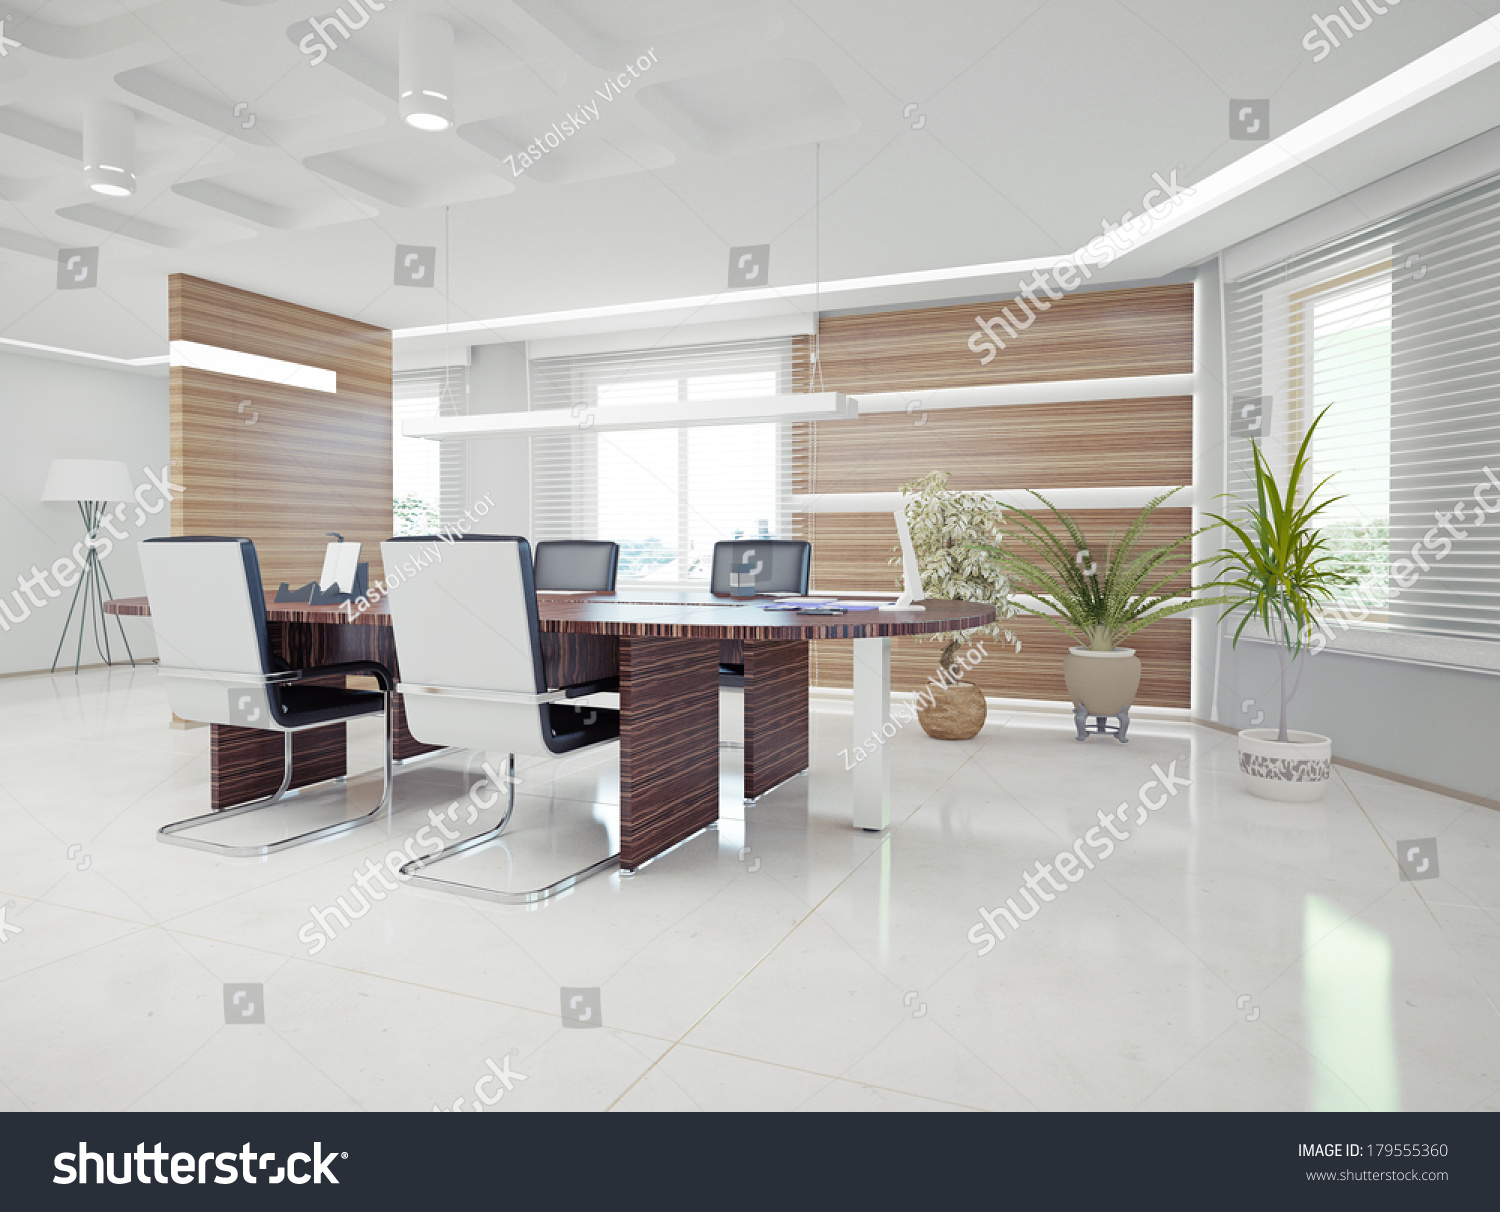 modern office interior design concept stock illustration